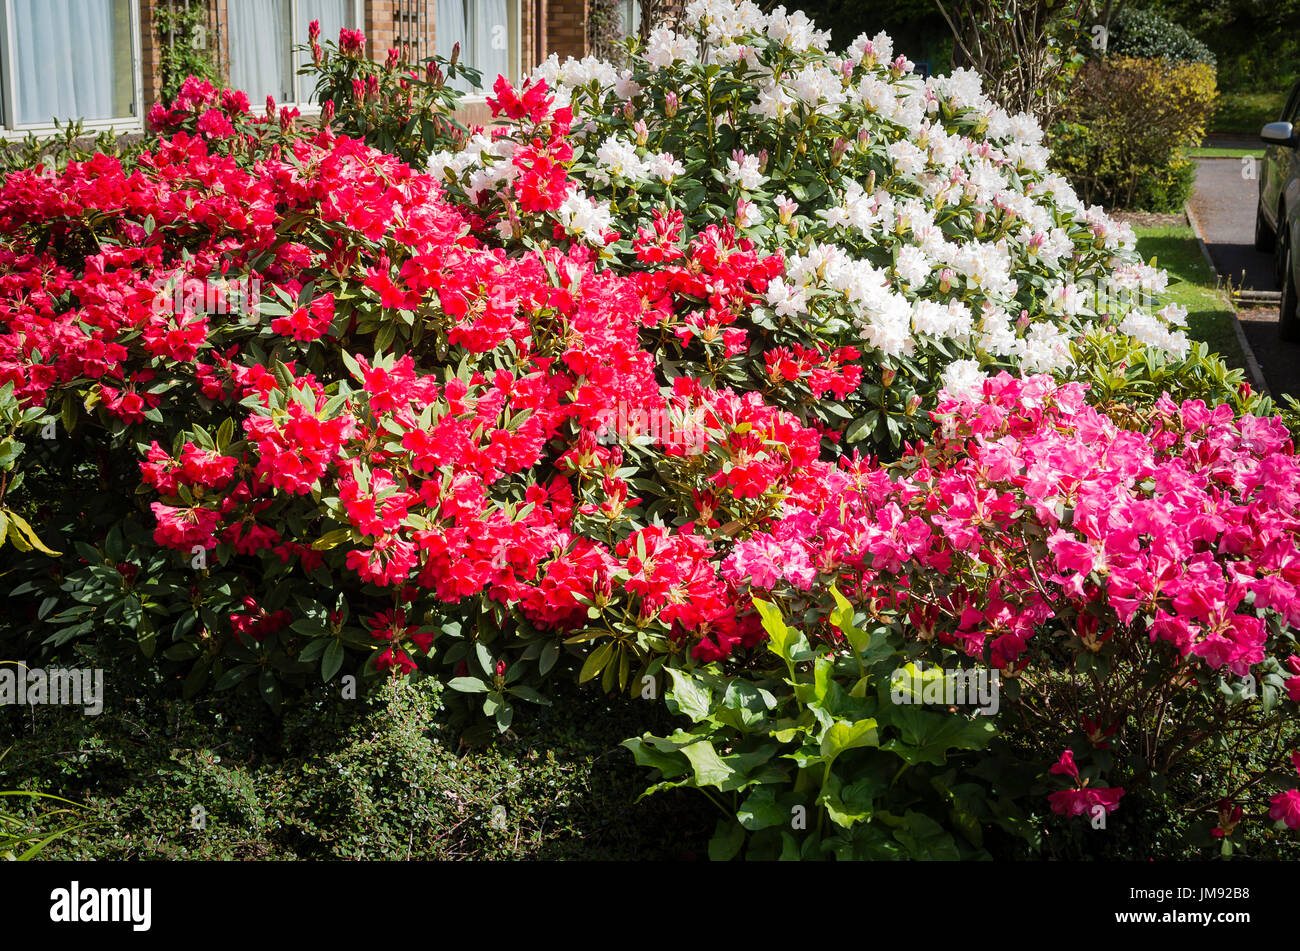 Display of flowering azaleas and rhododendrons in a hotel garden in Tiverton Devon UK Stock Photo